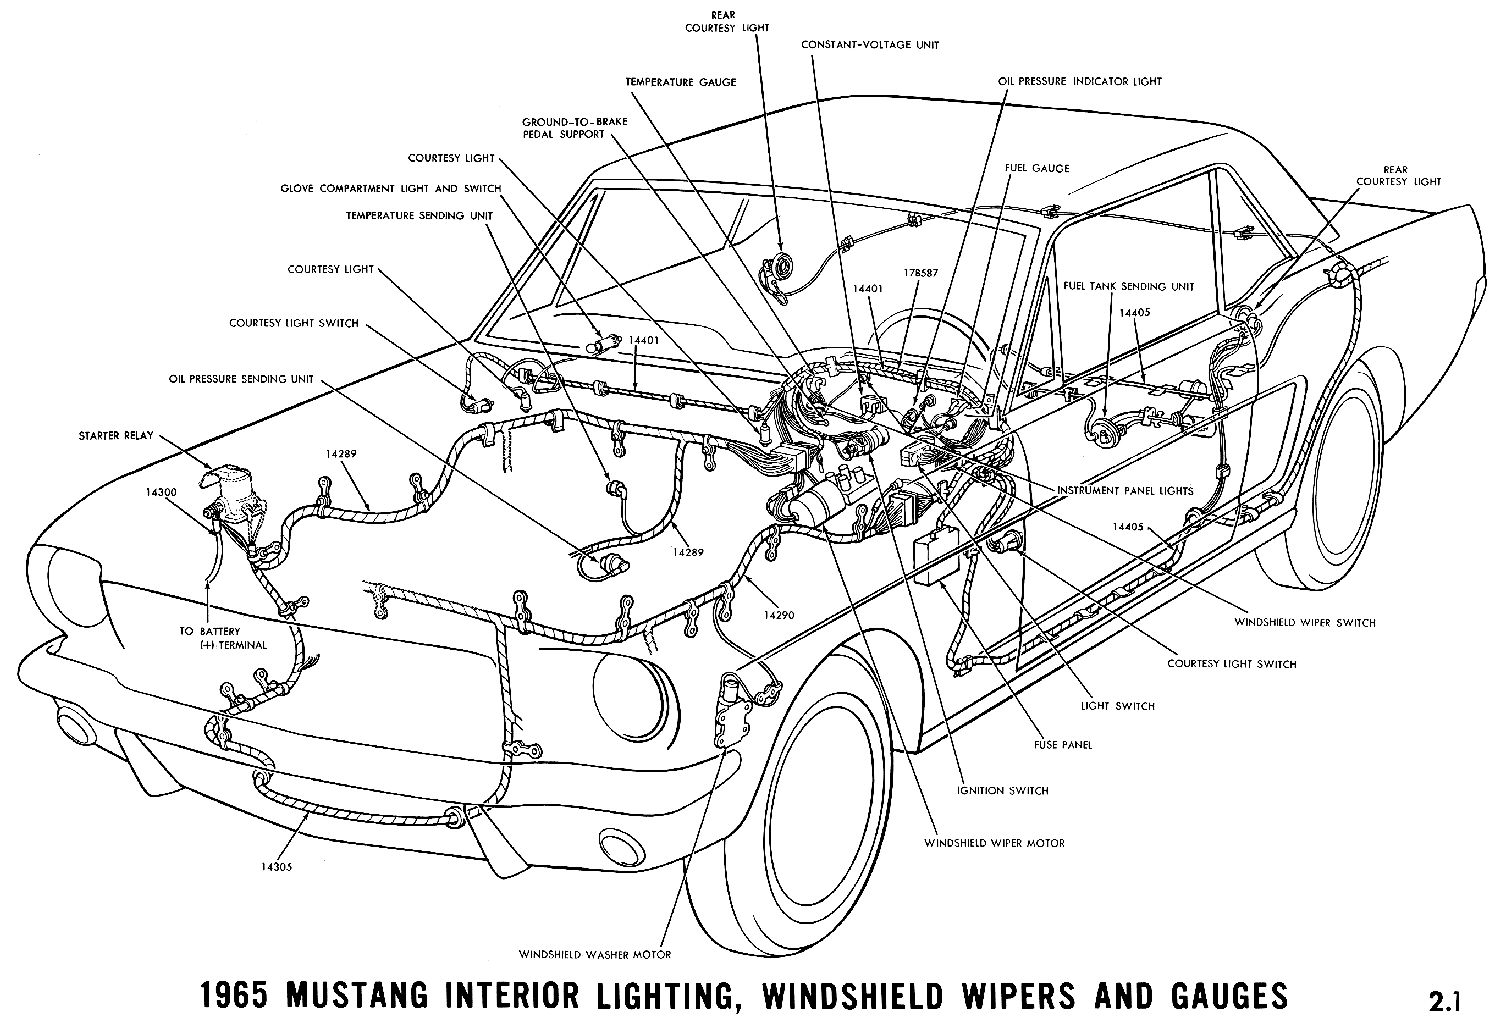 Wiring diagram backup lights 1965 mustang readingrat 1965 mustang wiring diagrams average joe restorationwiring diagramwiring diagram backup lights cheapraybanclubmaster Images